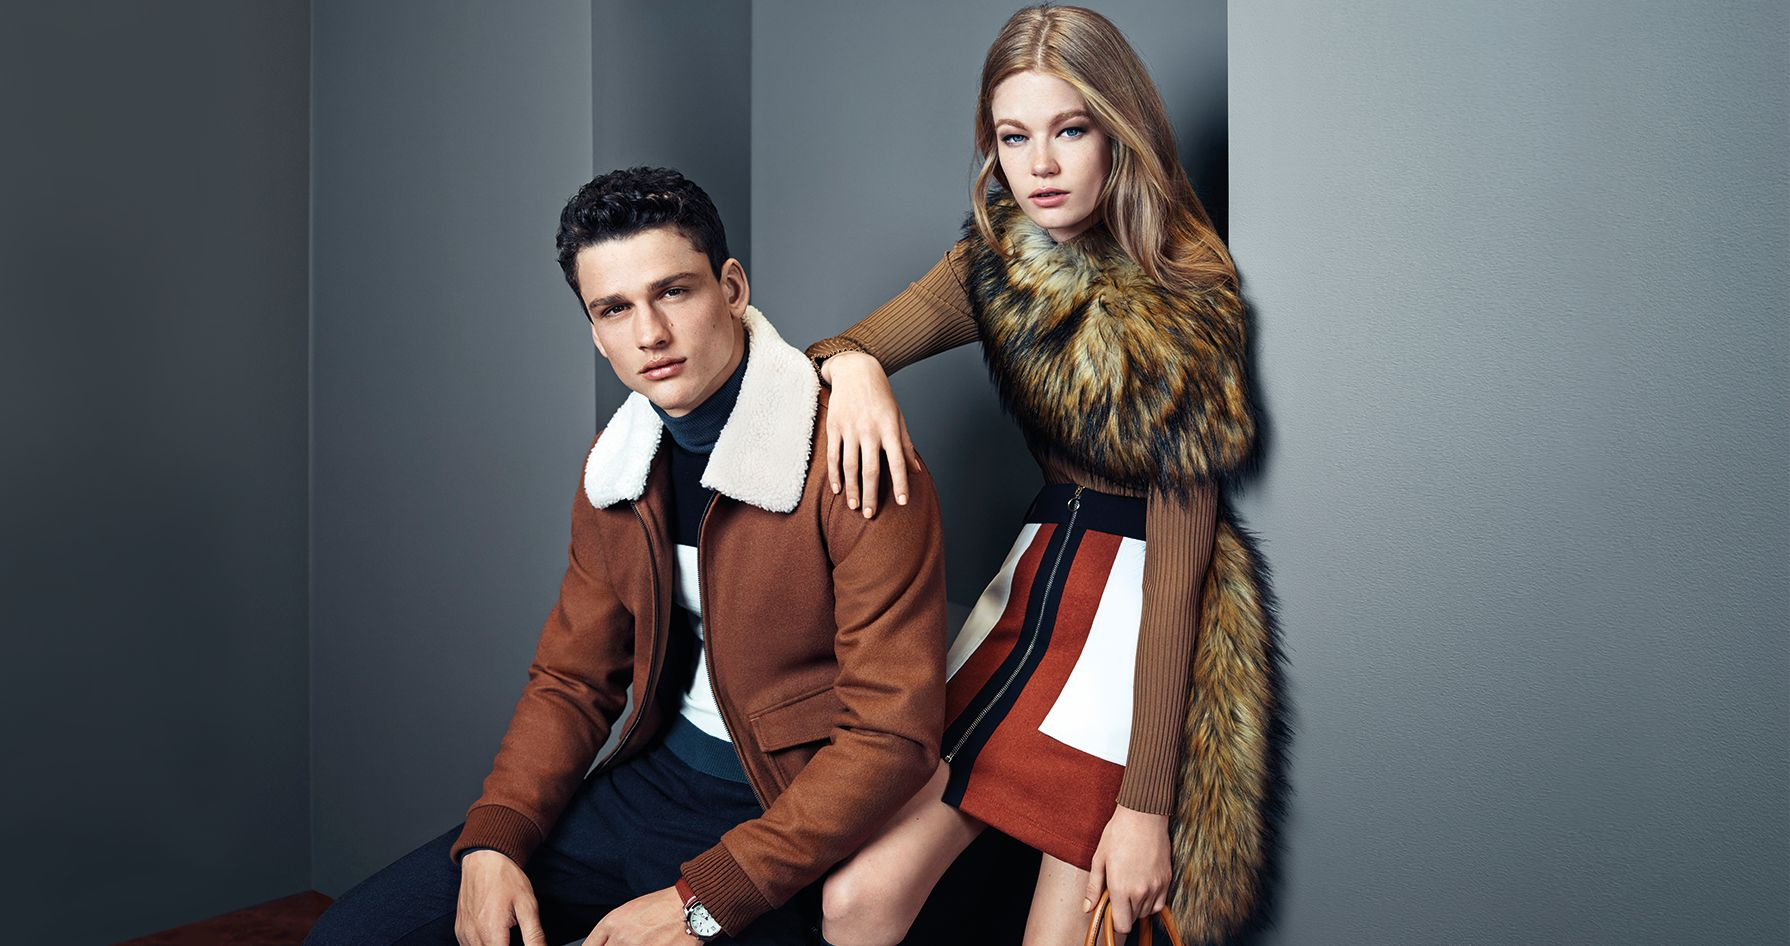 SEE THE AUTUMN WINTER 15 CAMPAIGN